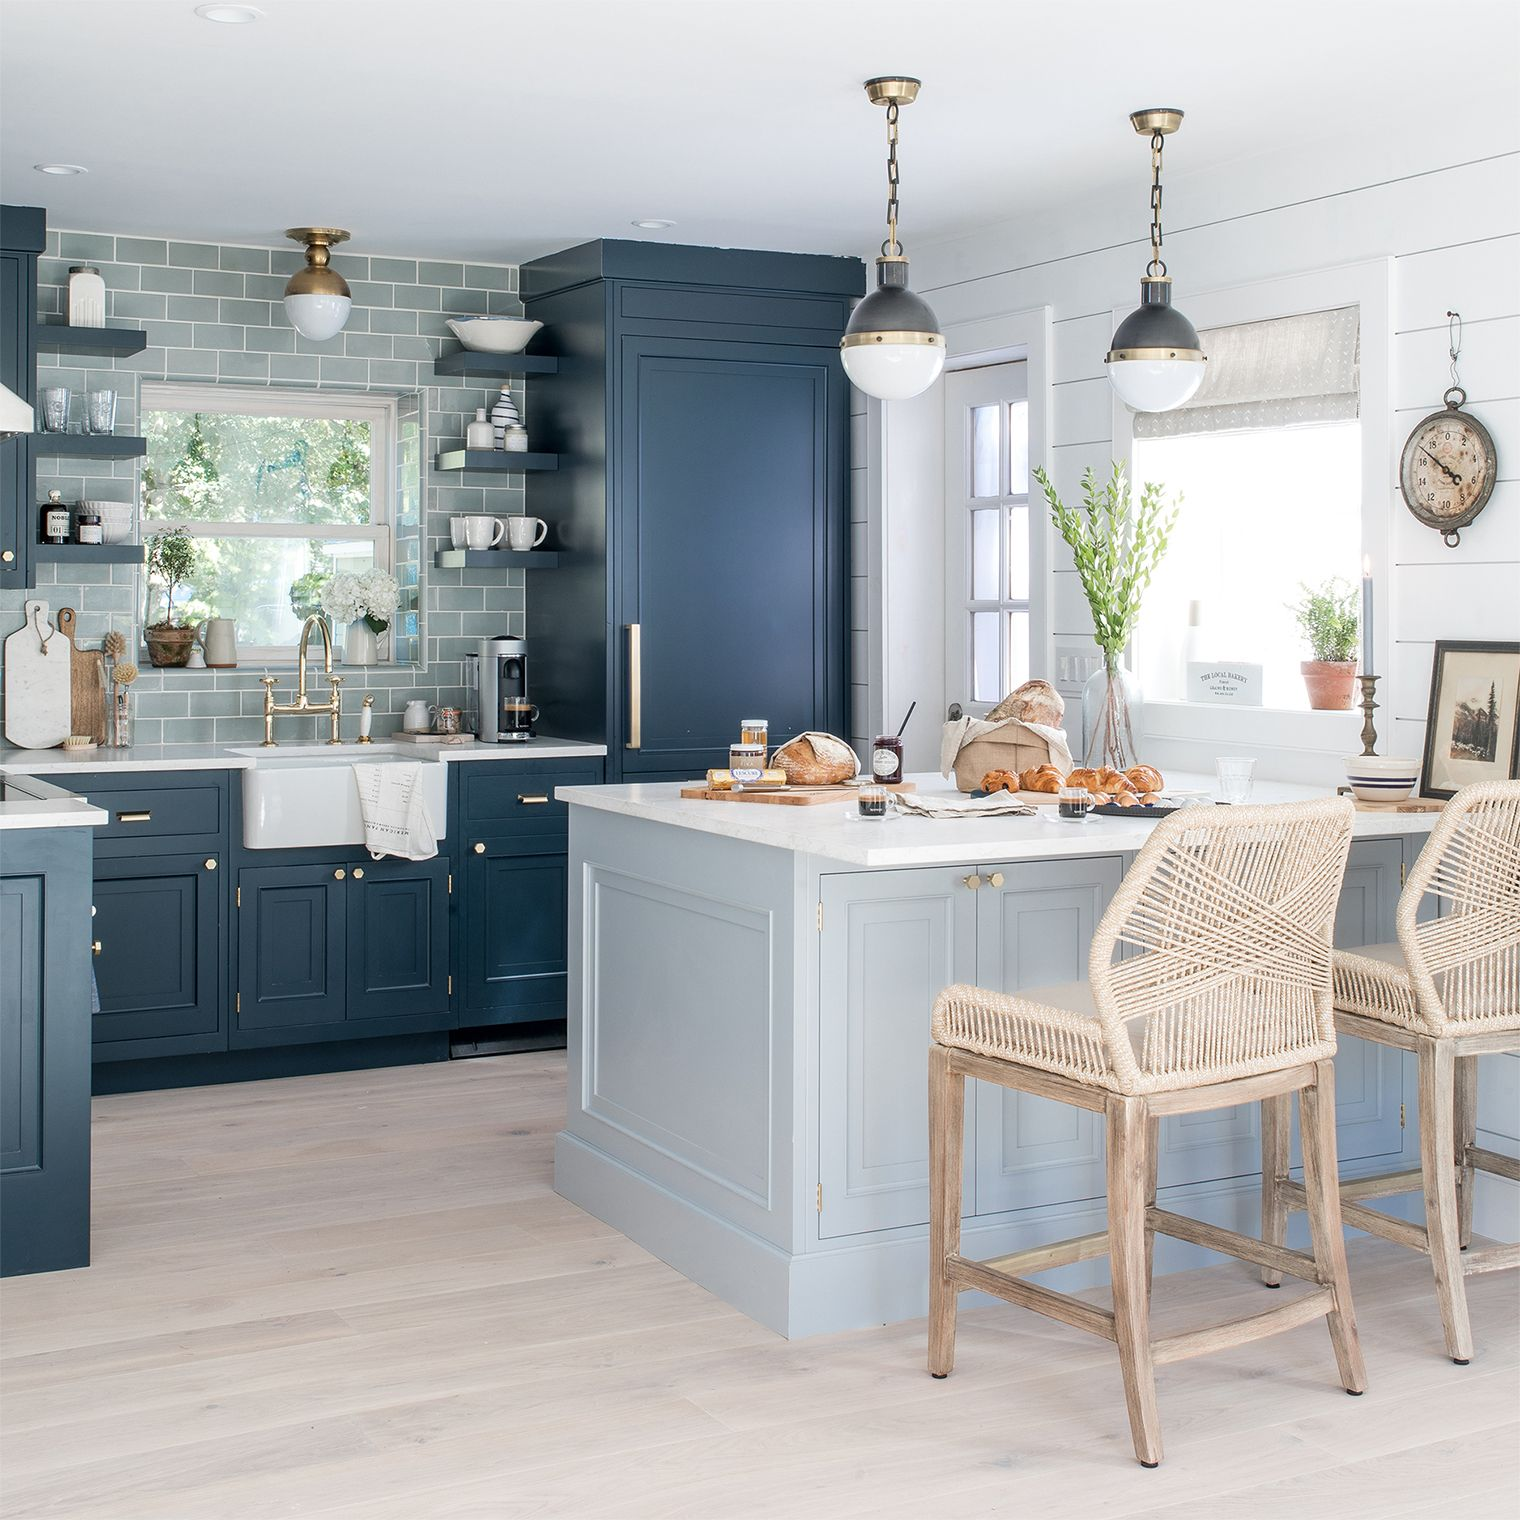 Our Beach House Kitchen: The Reveal | Beach house kitchens ...